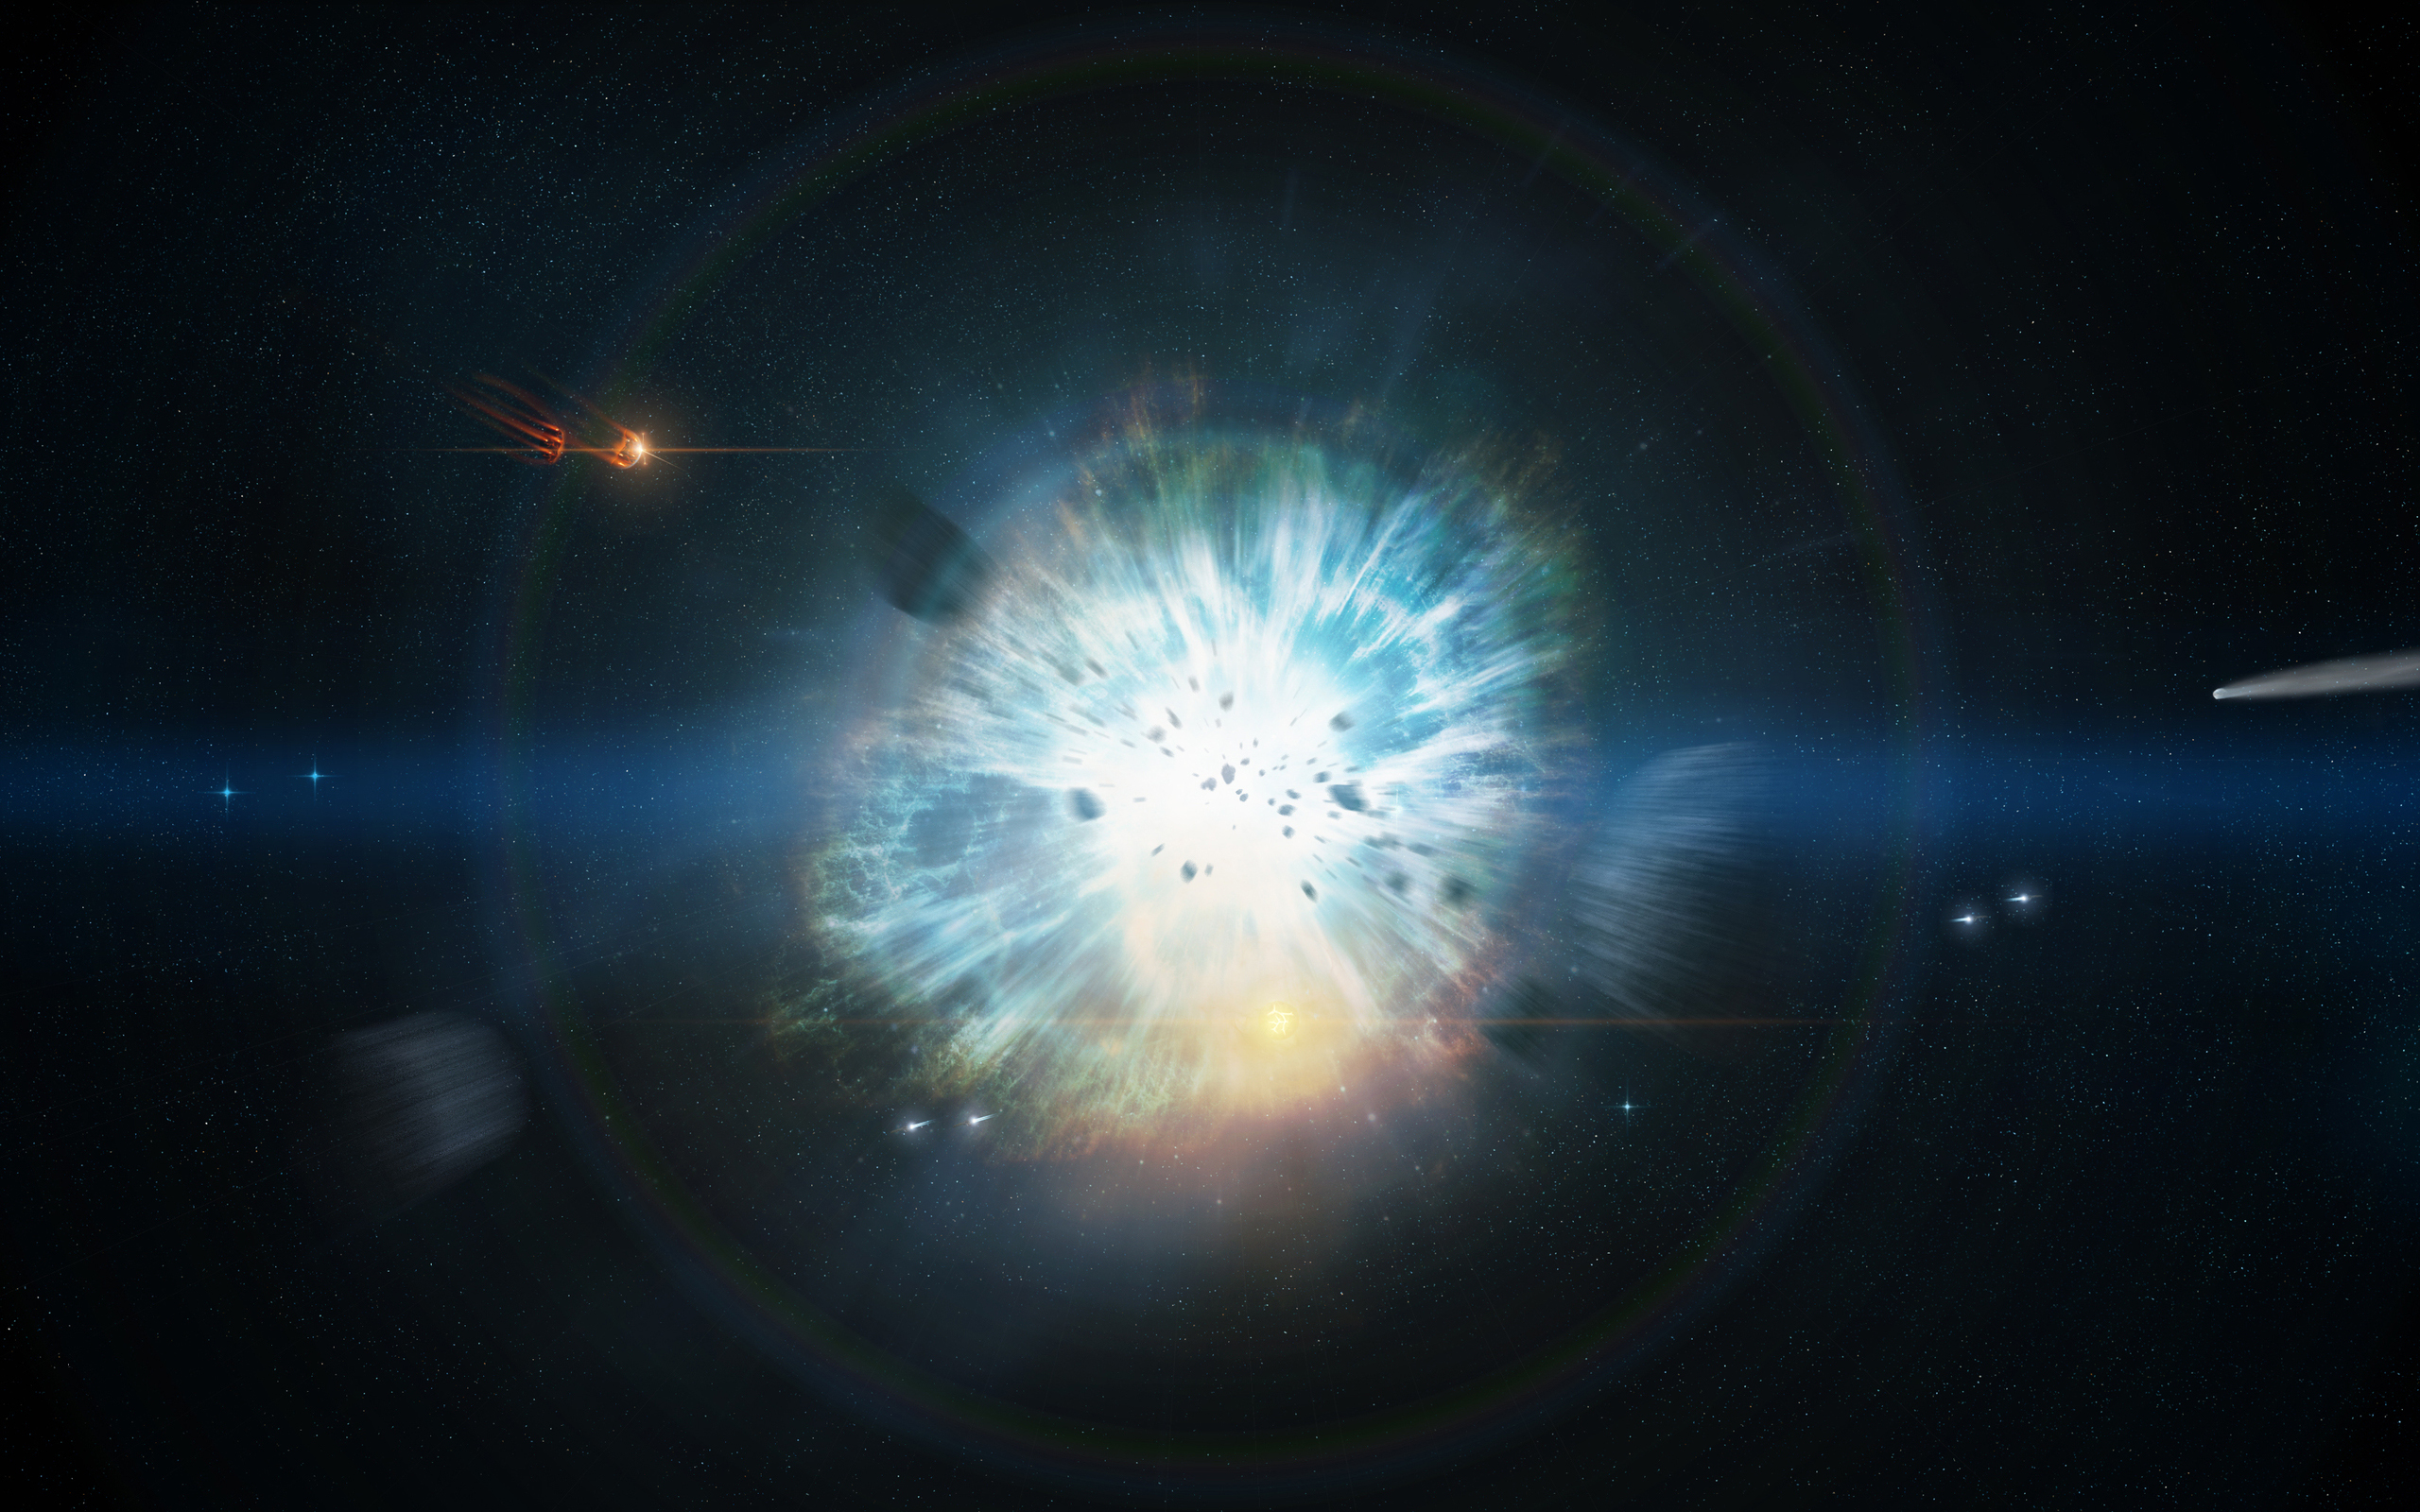 Supernova Explosion in Space Wallpaper page 3   Pics about space 2560x1600